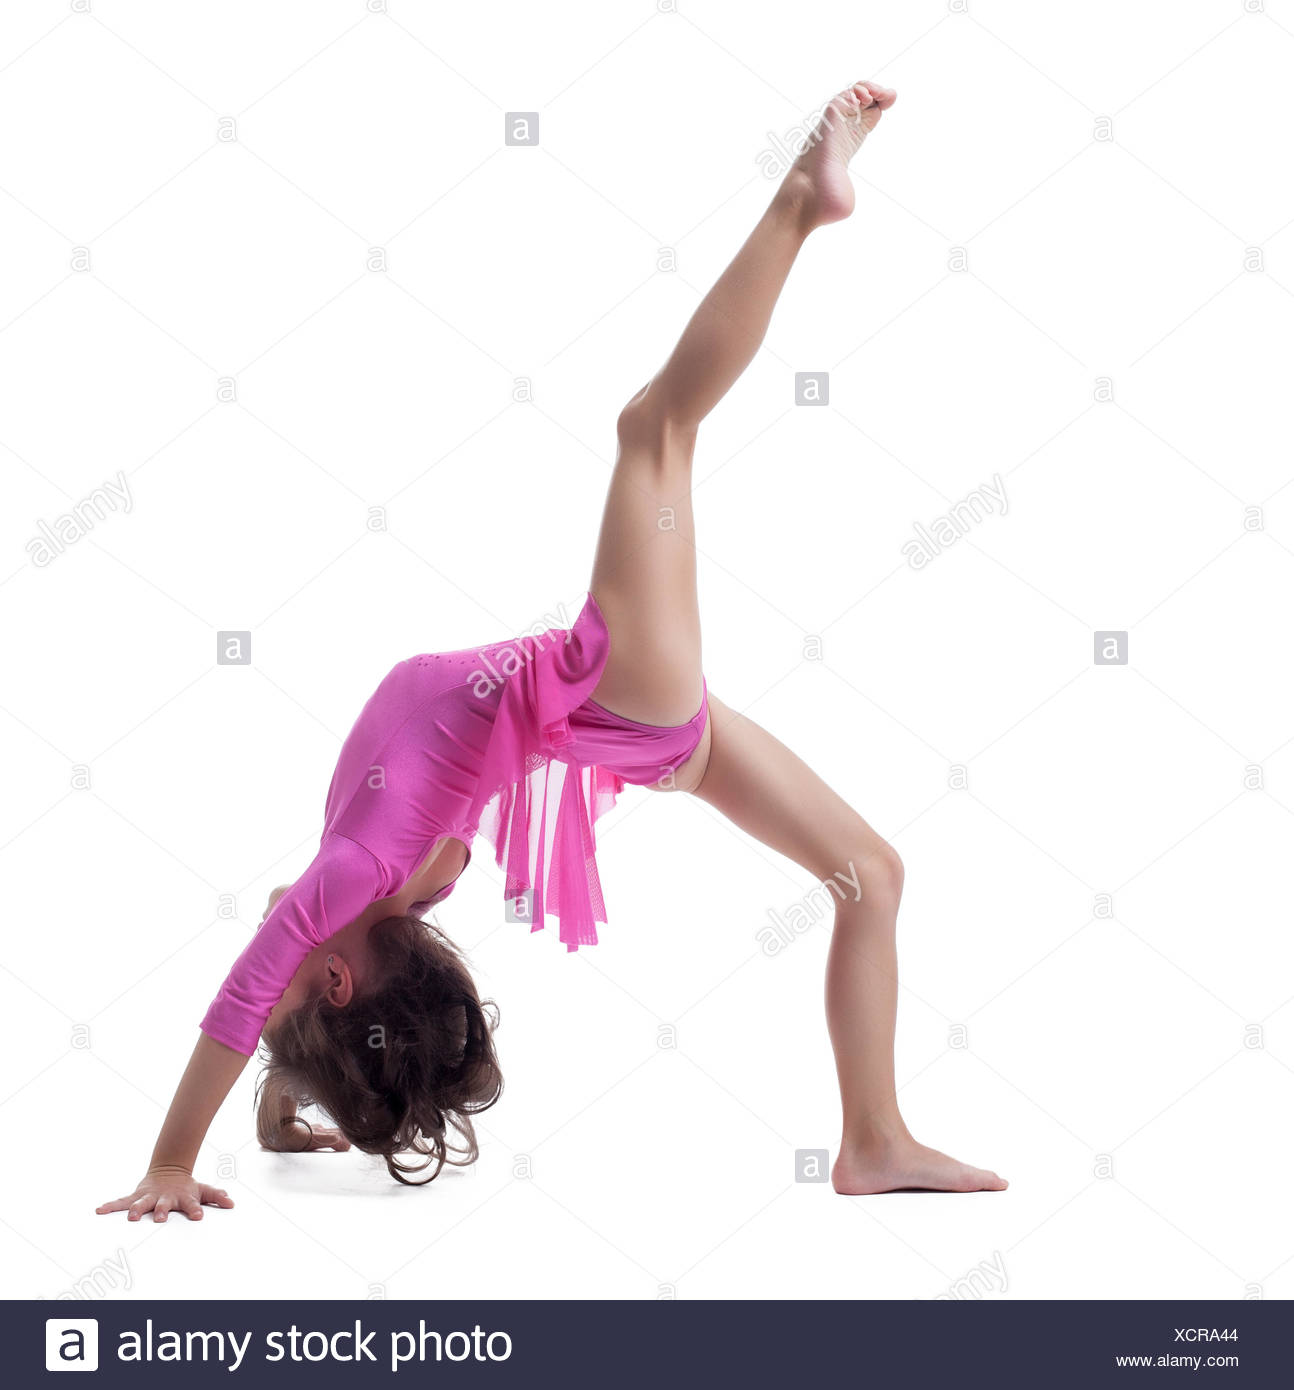 Flexible gymnast girls idea and